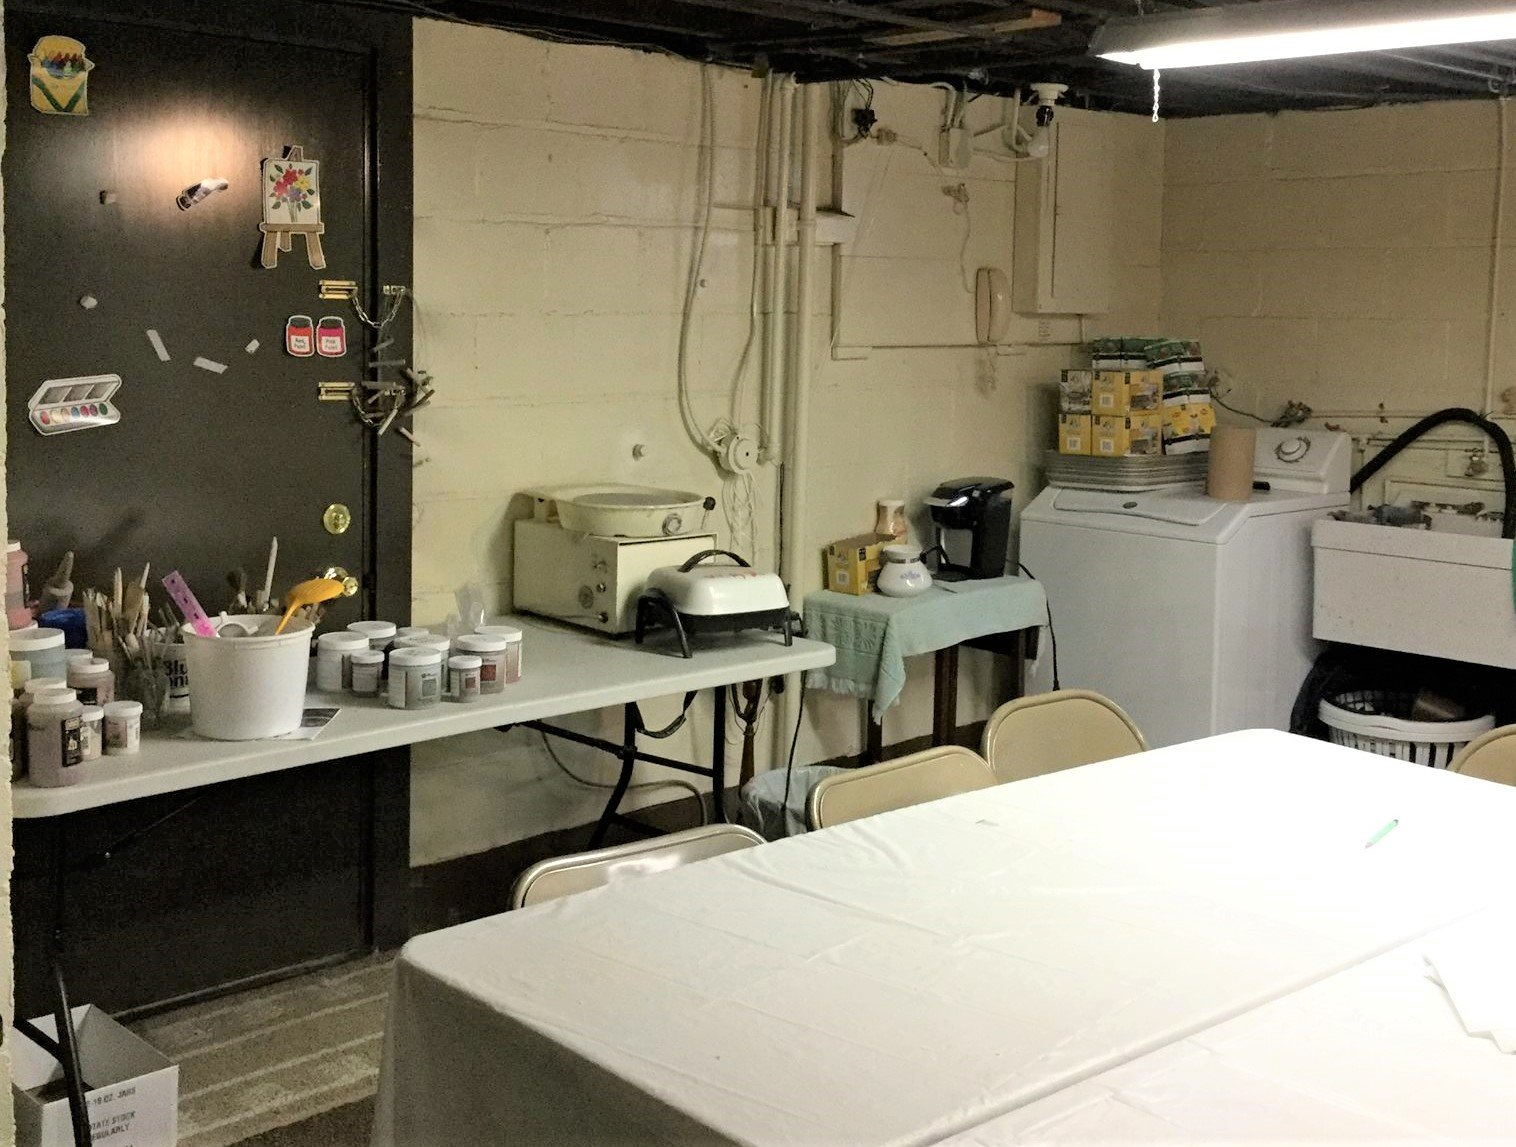 Work area for painting classes.